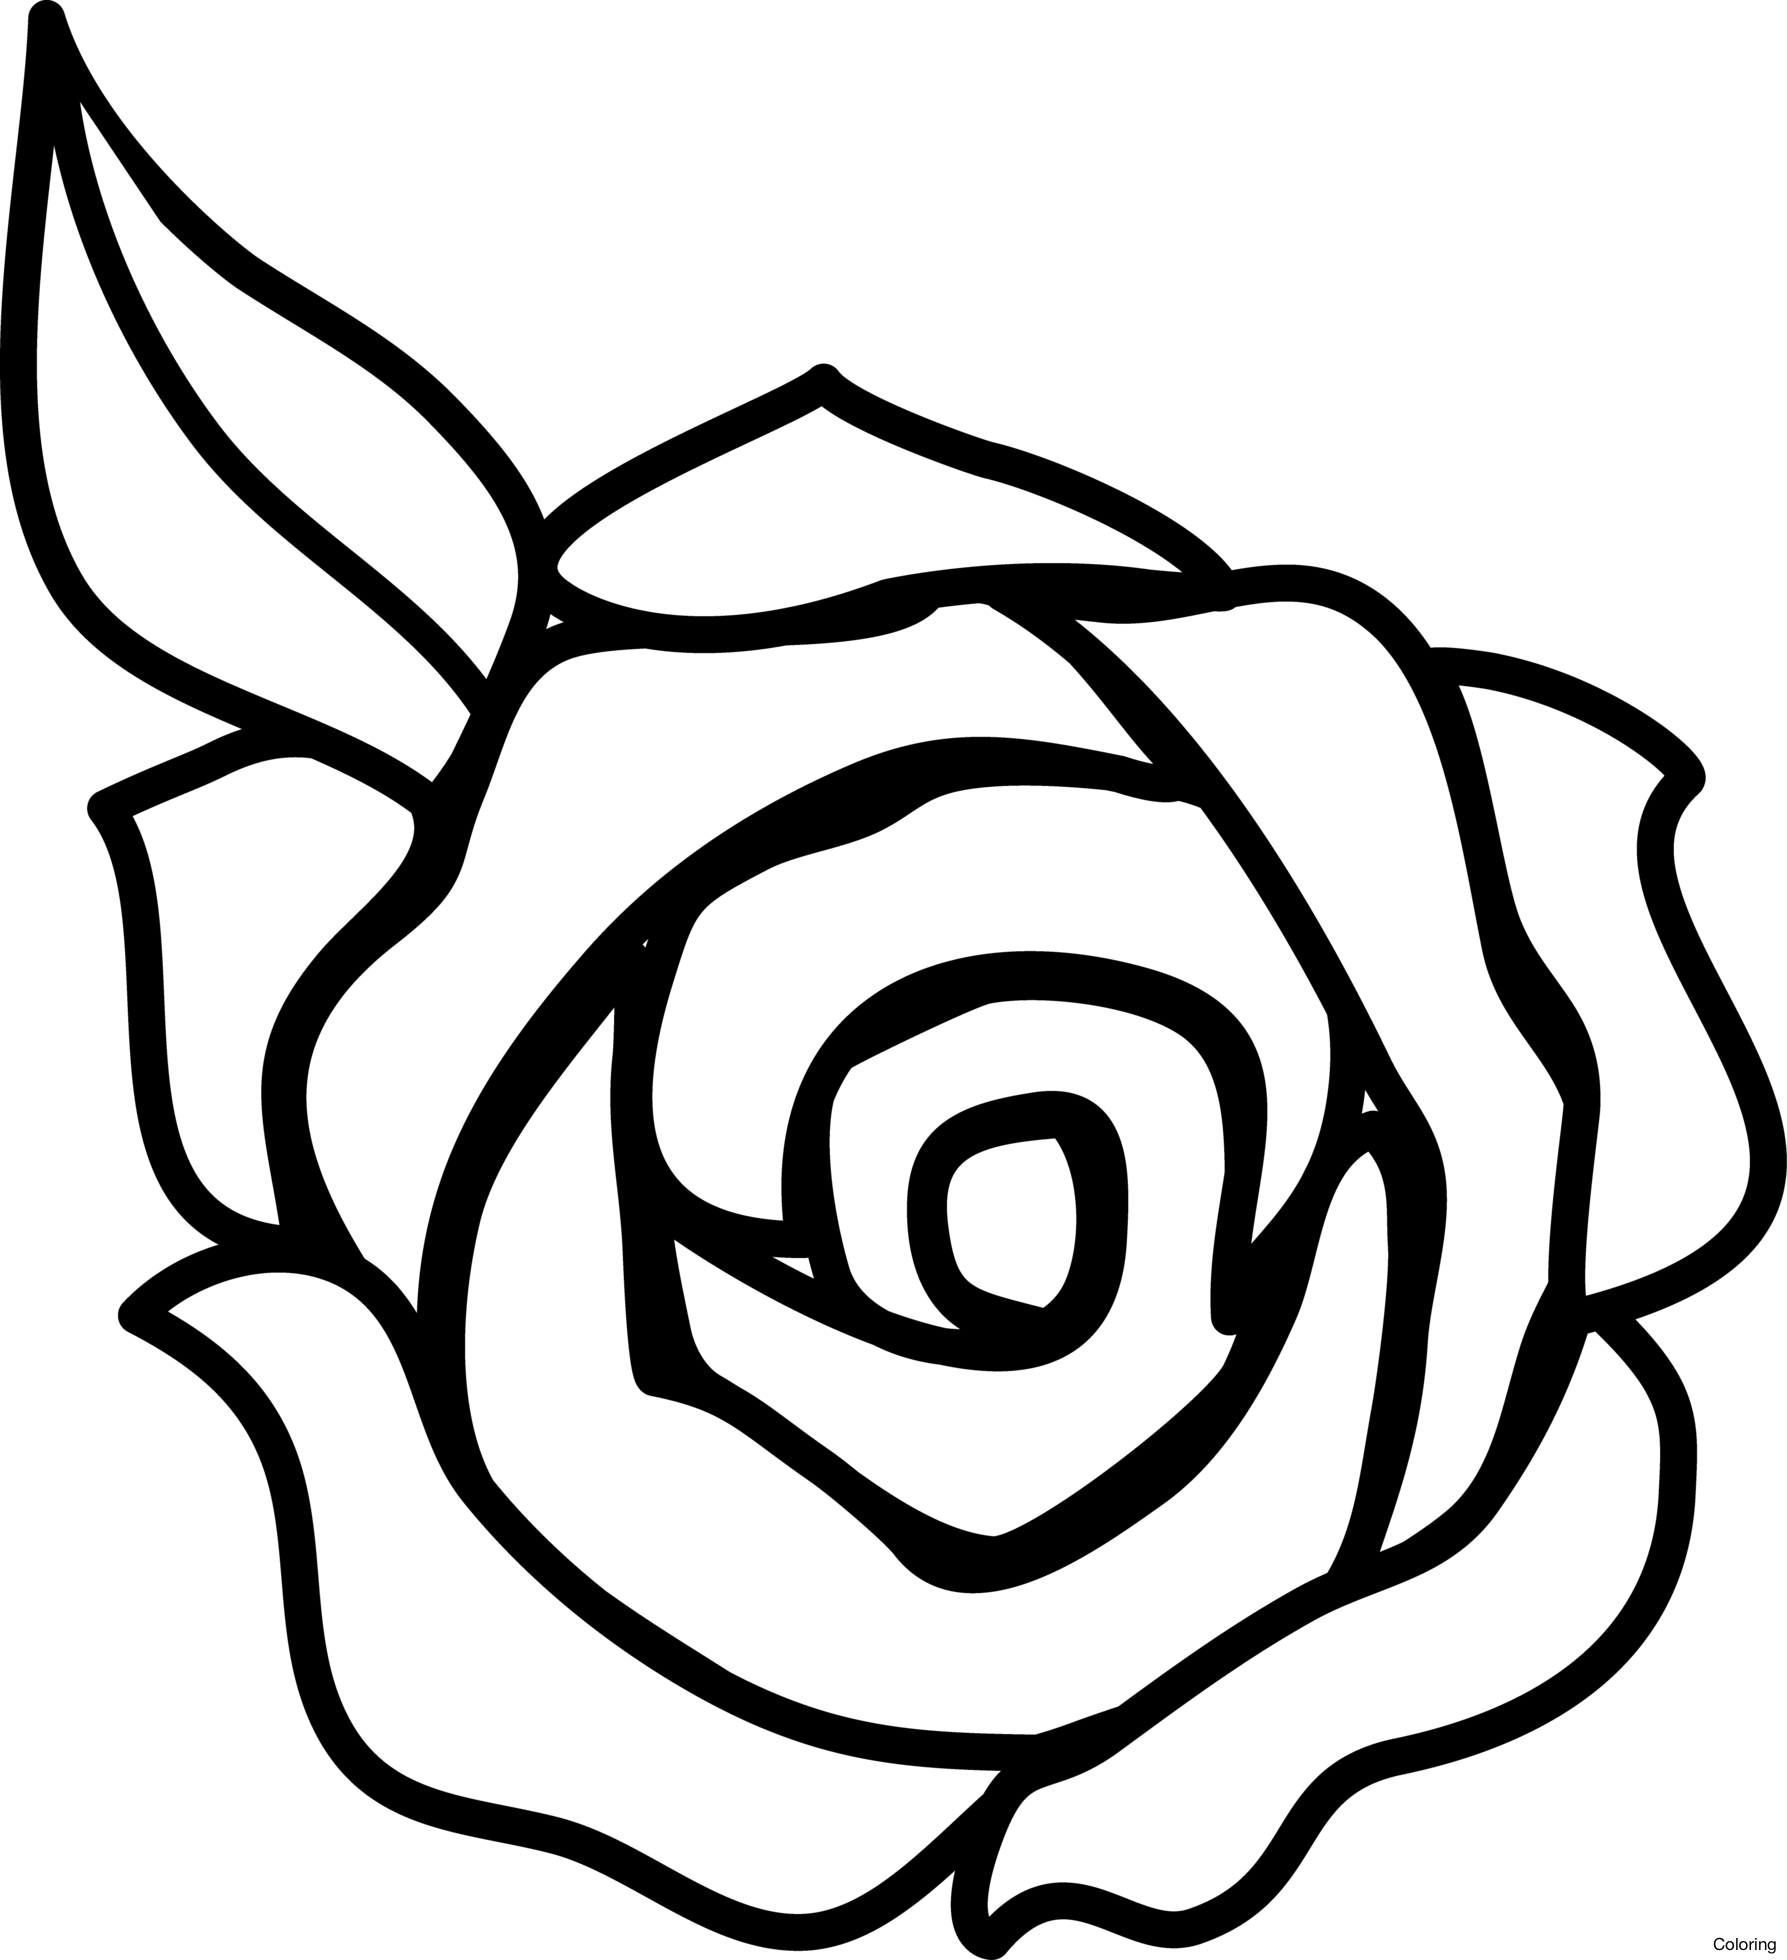 picture royalty free download Camellia drawing easy. Realistic of a rose